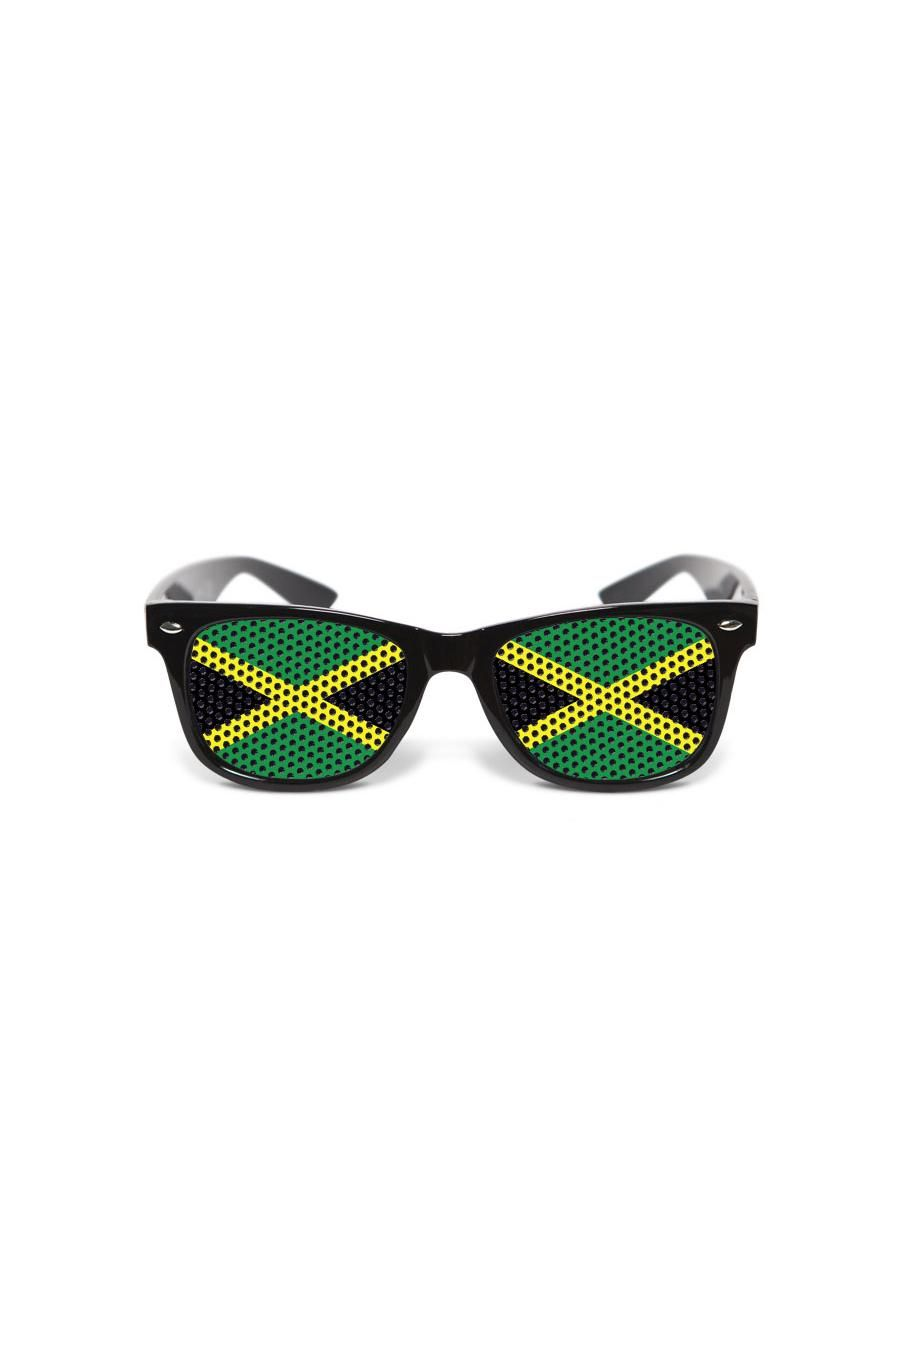 Jamaica Sunglasses -- nice! You can create your own, too:  http://www.motivators.com/Promotional-Custom-FullColorCustomLensGlasses-63424.html